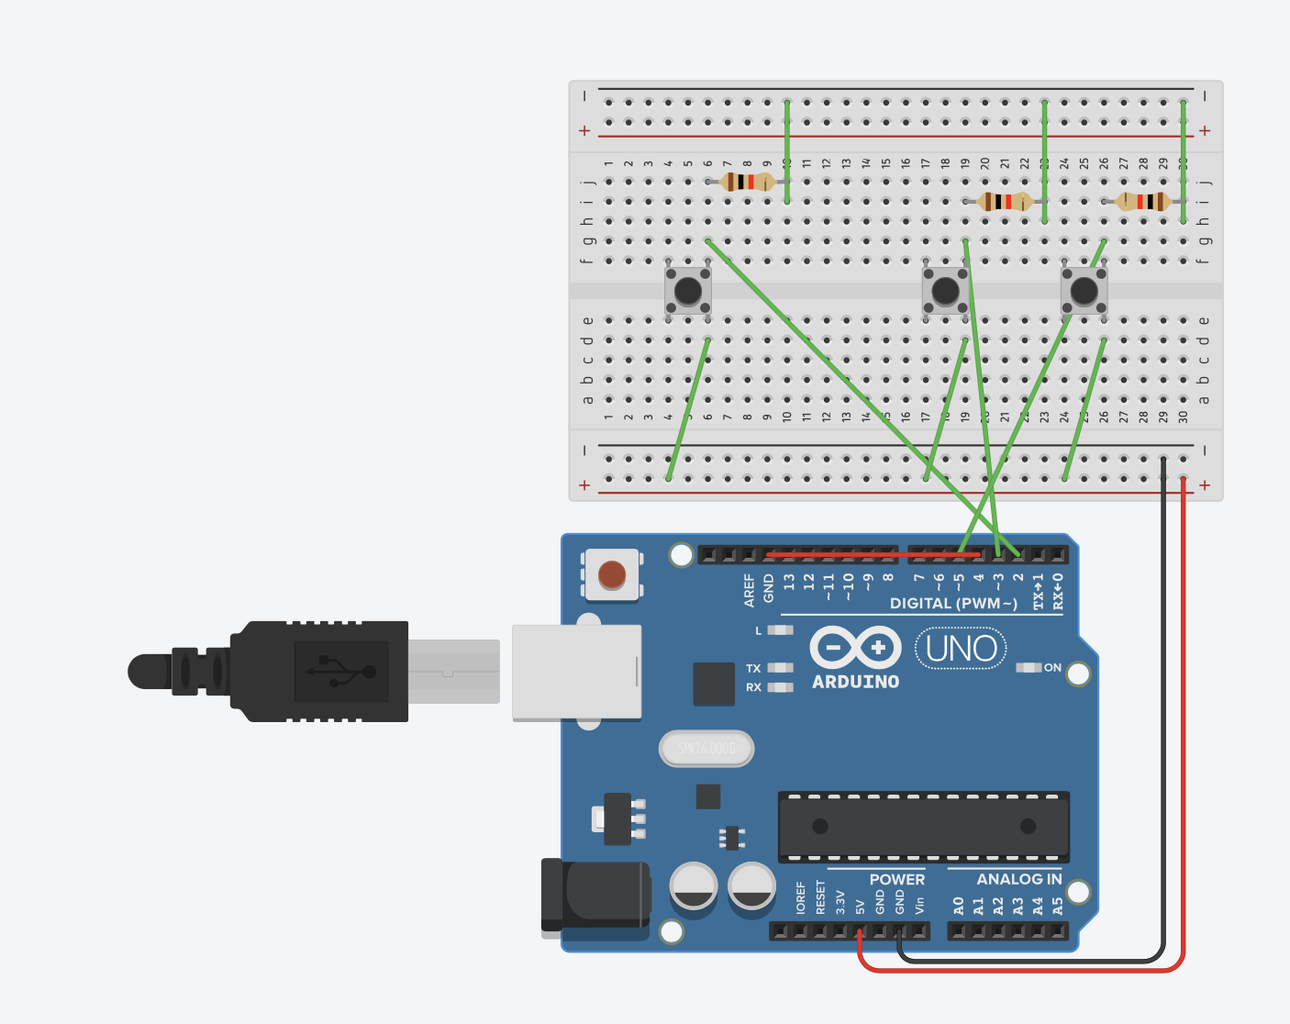 Connect Components to the Breadboard